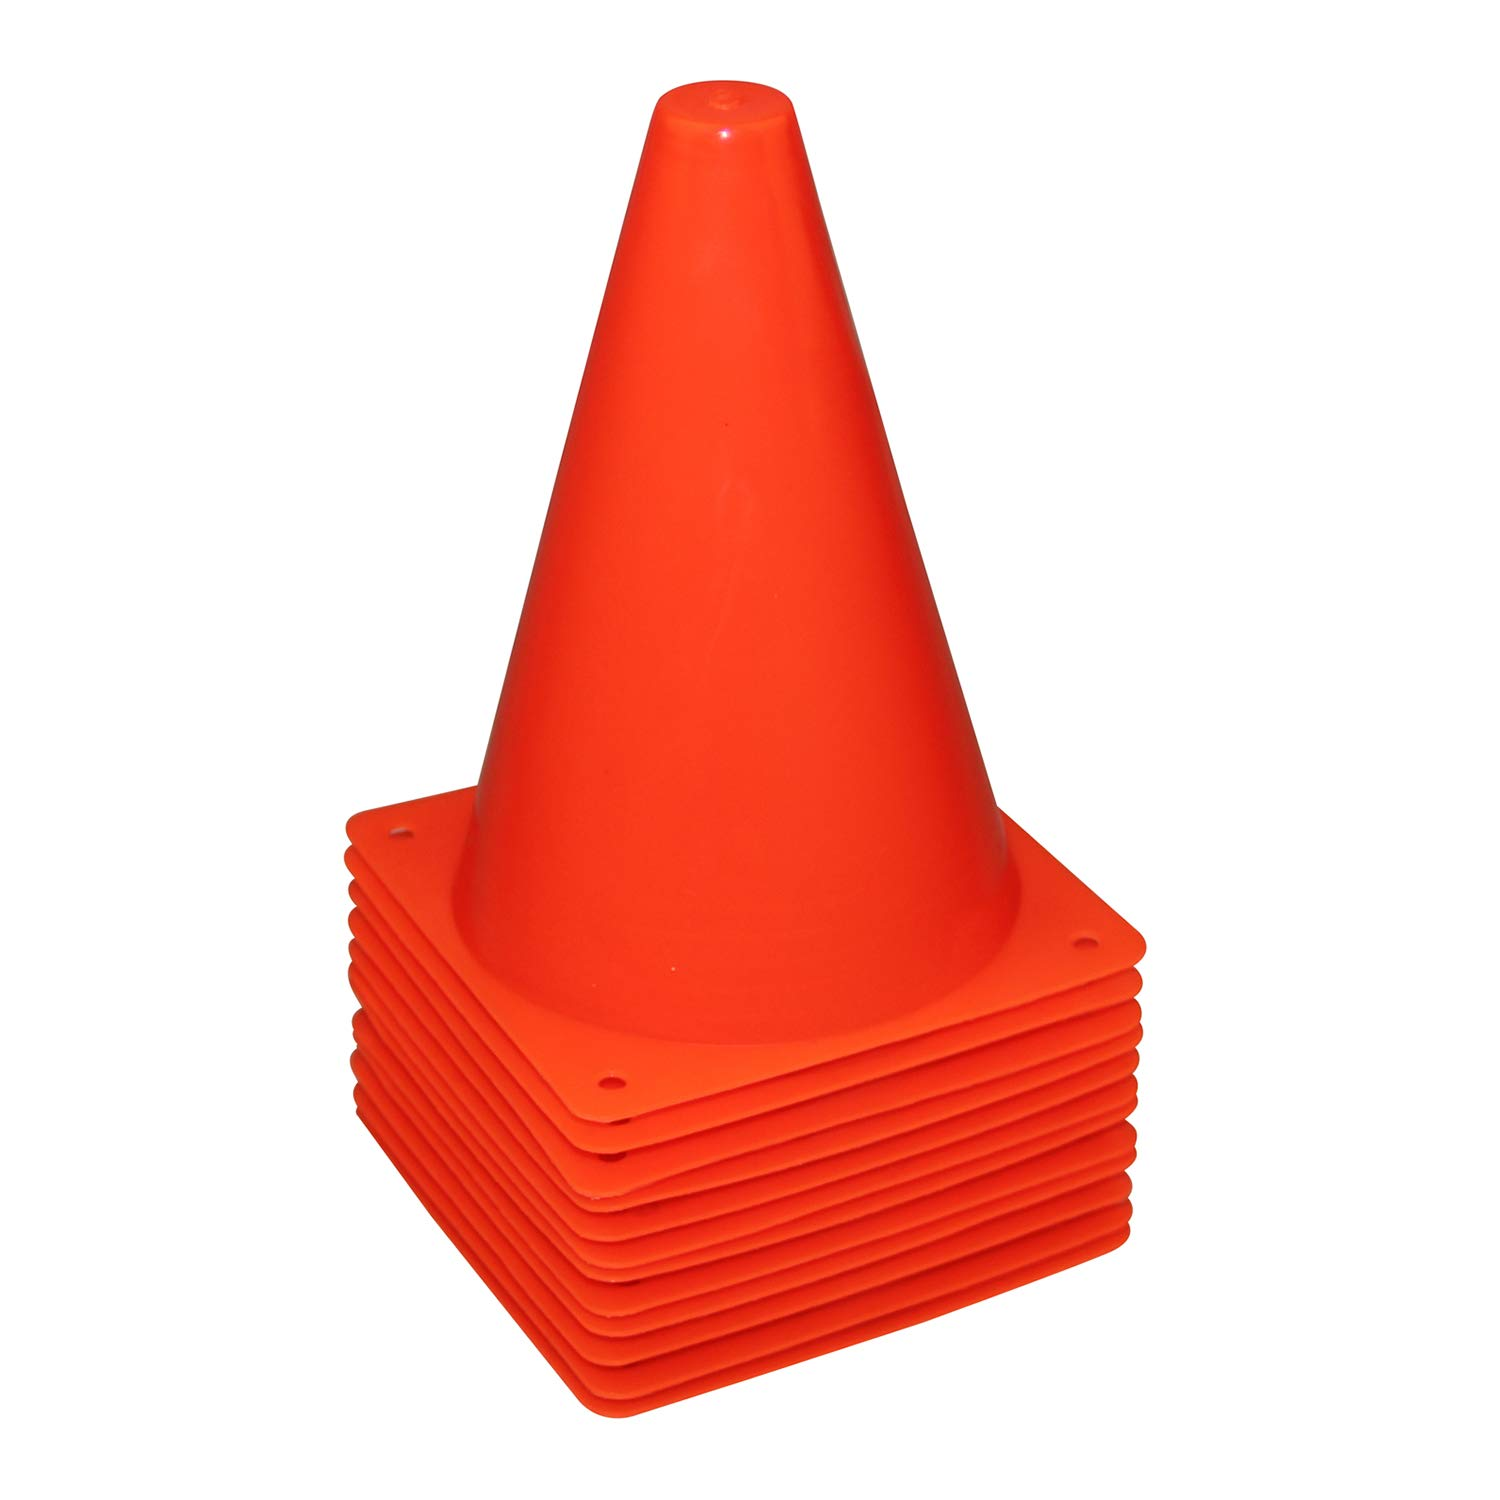 REEHUT 7.5 Inch Plastic Sport Training Traffic Cone (Set of 12, Red)